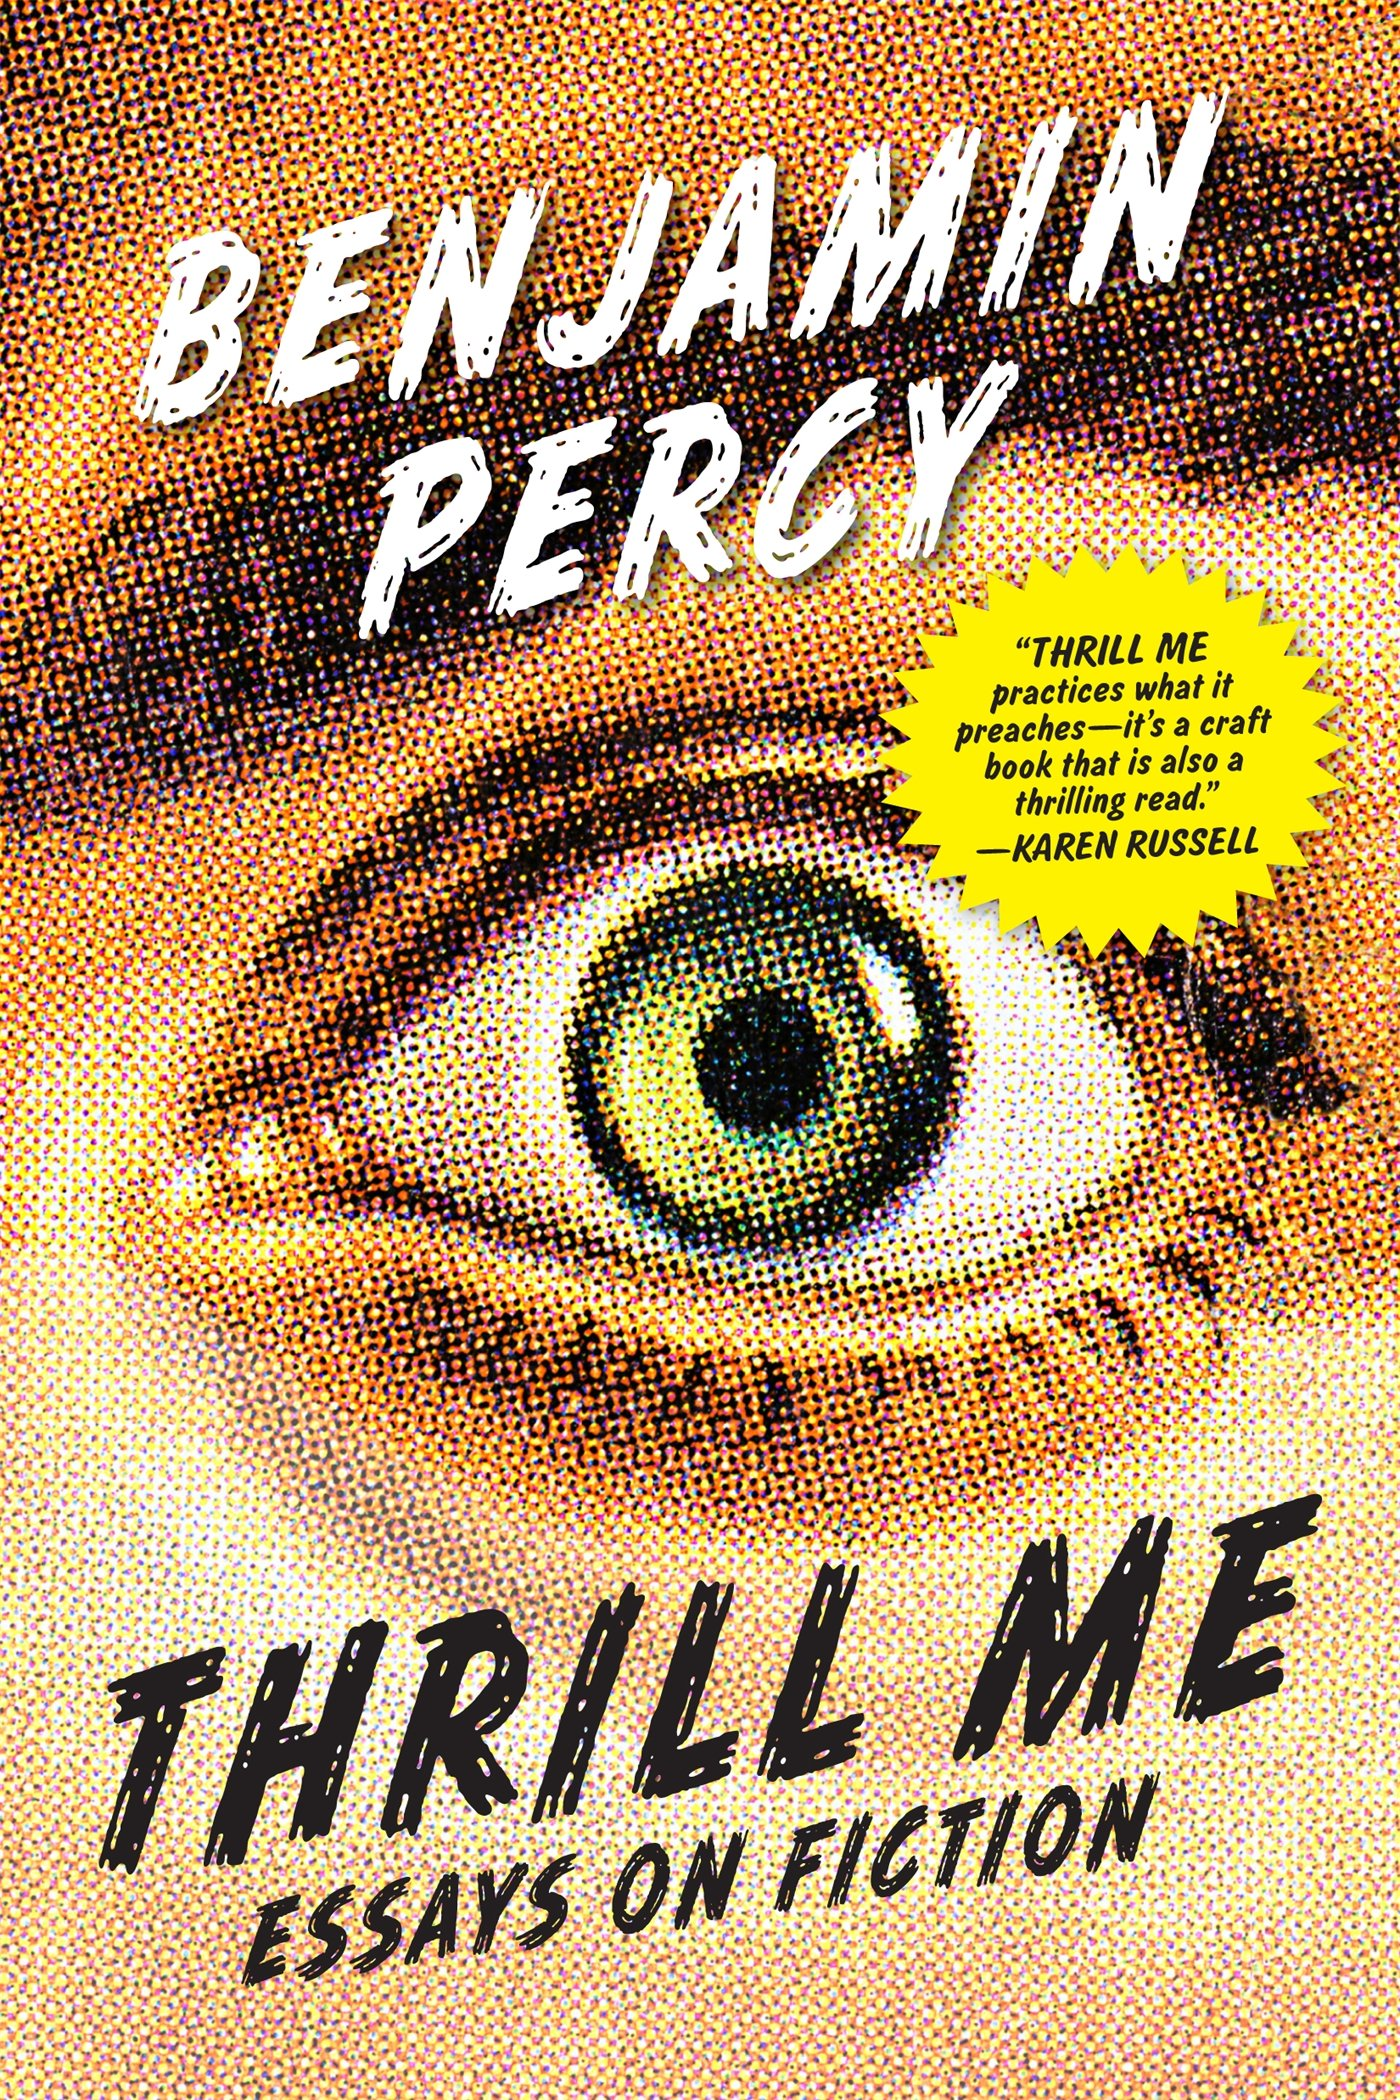 Thrill Me: Essays on Fiction: Benjamin Percy: 9781555977597